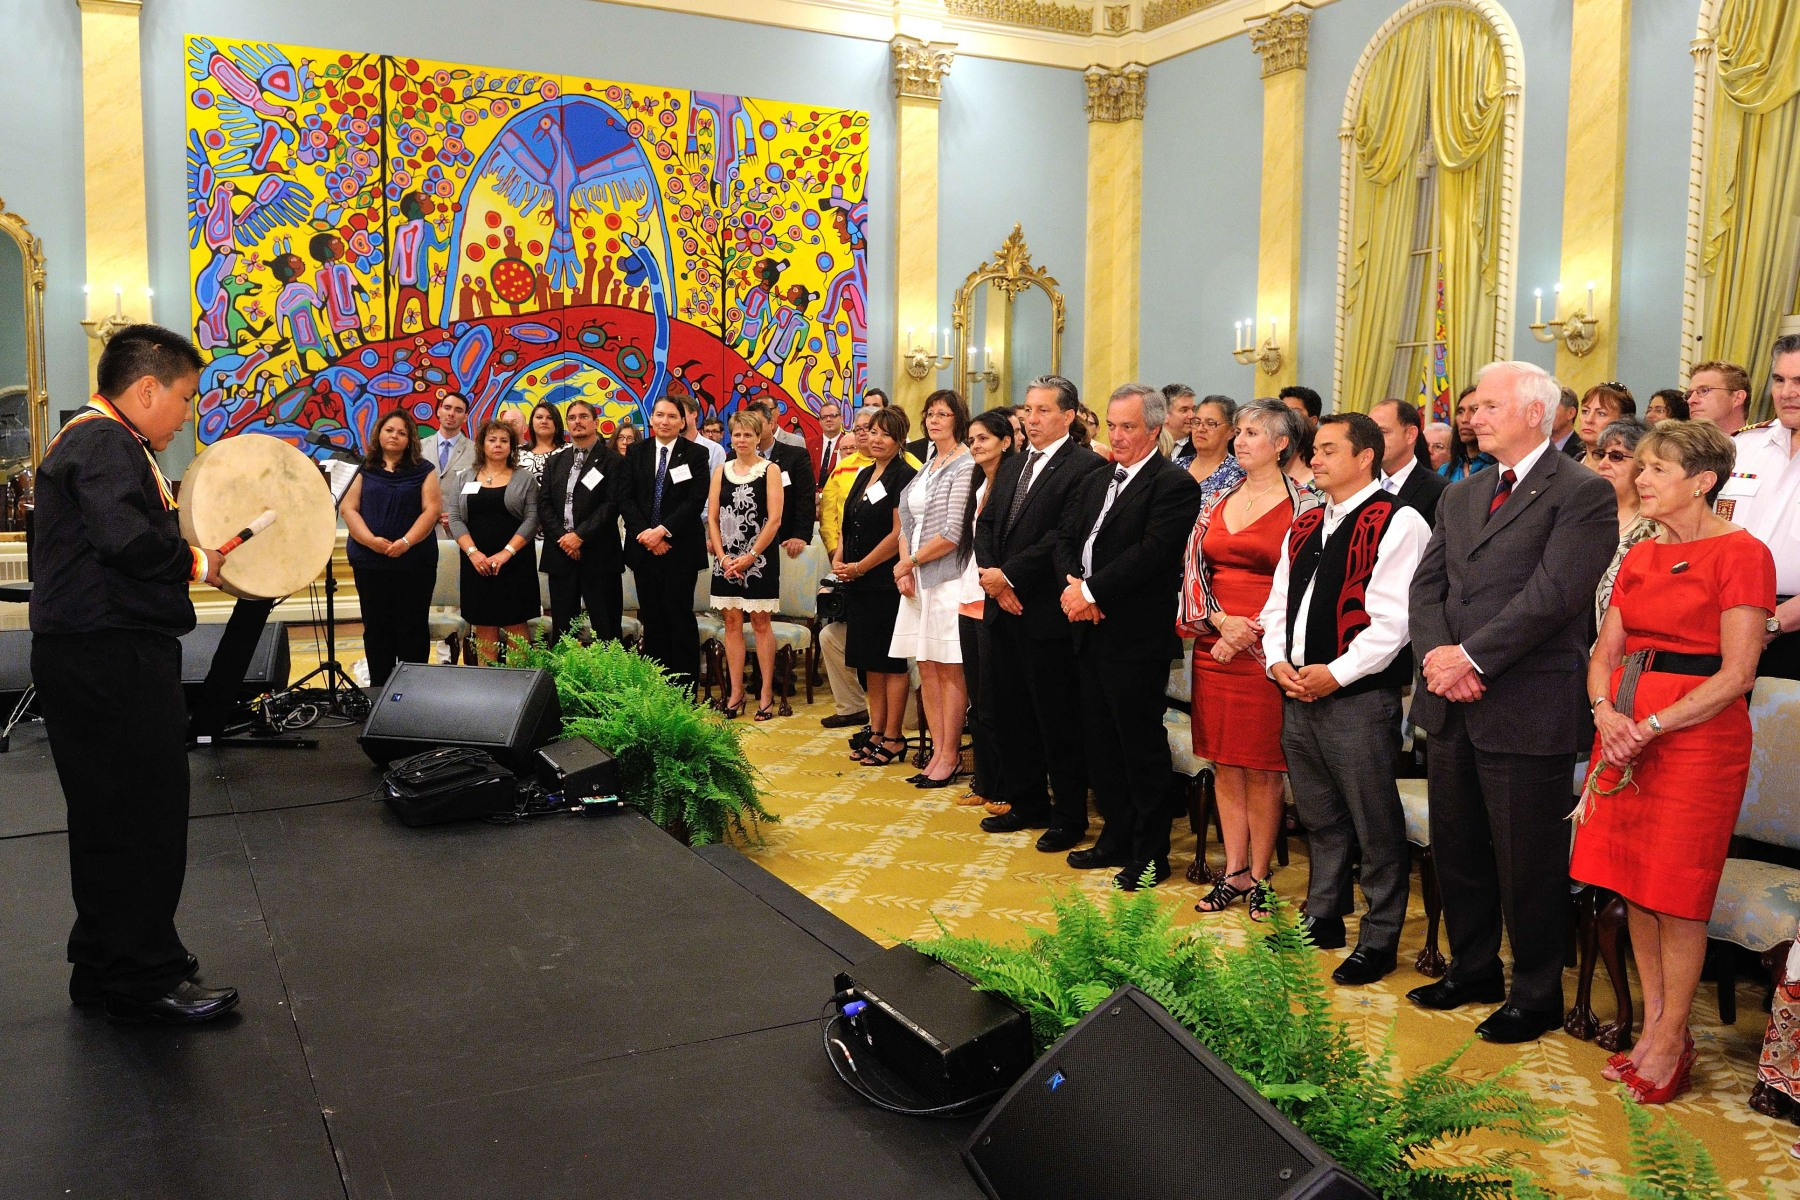 During the evening, Their Excellencies hosted a concert organized in partnership with APTN in celebration of National Aboriginal Day.